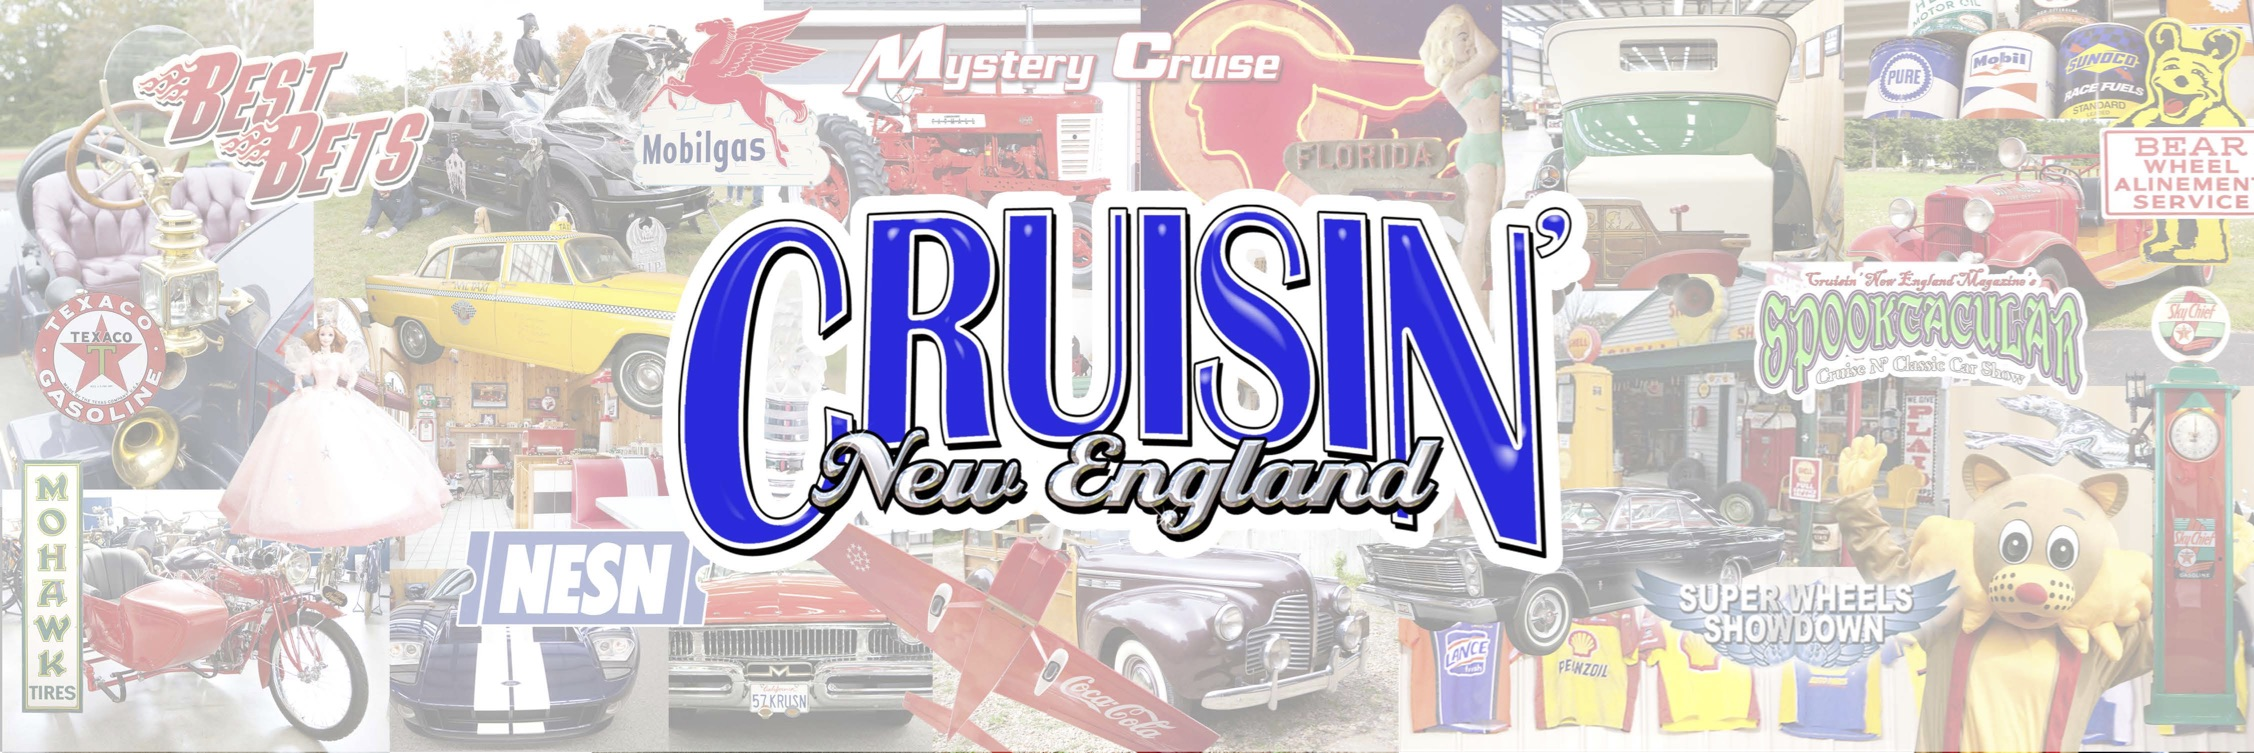 Cruisin' Banner copy.jpg